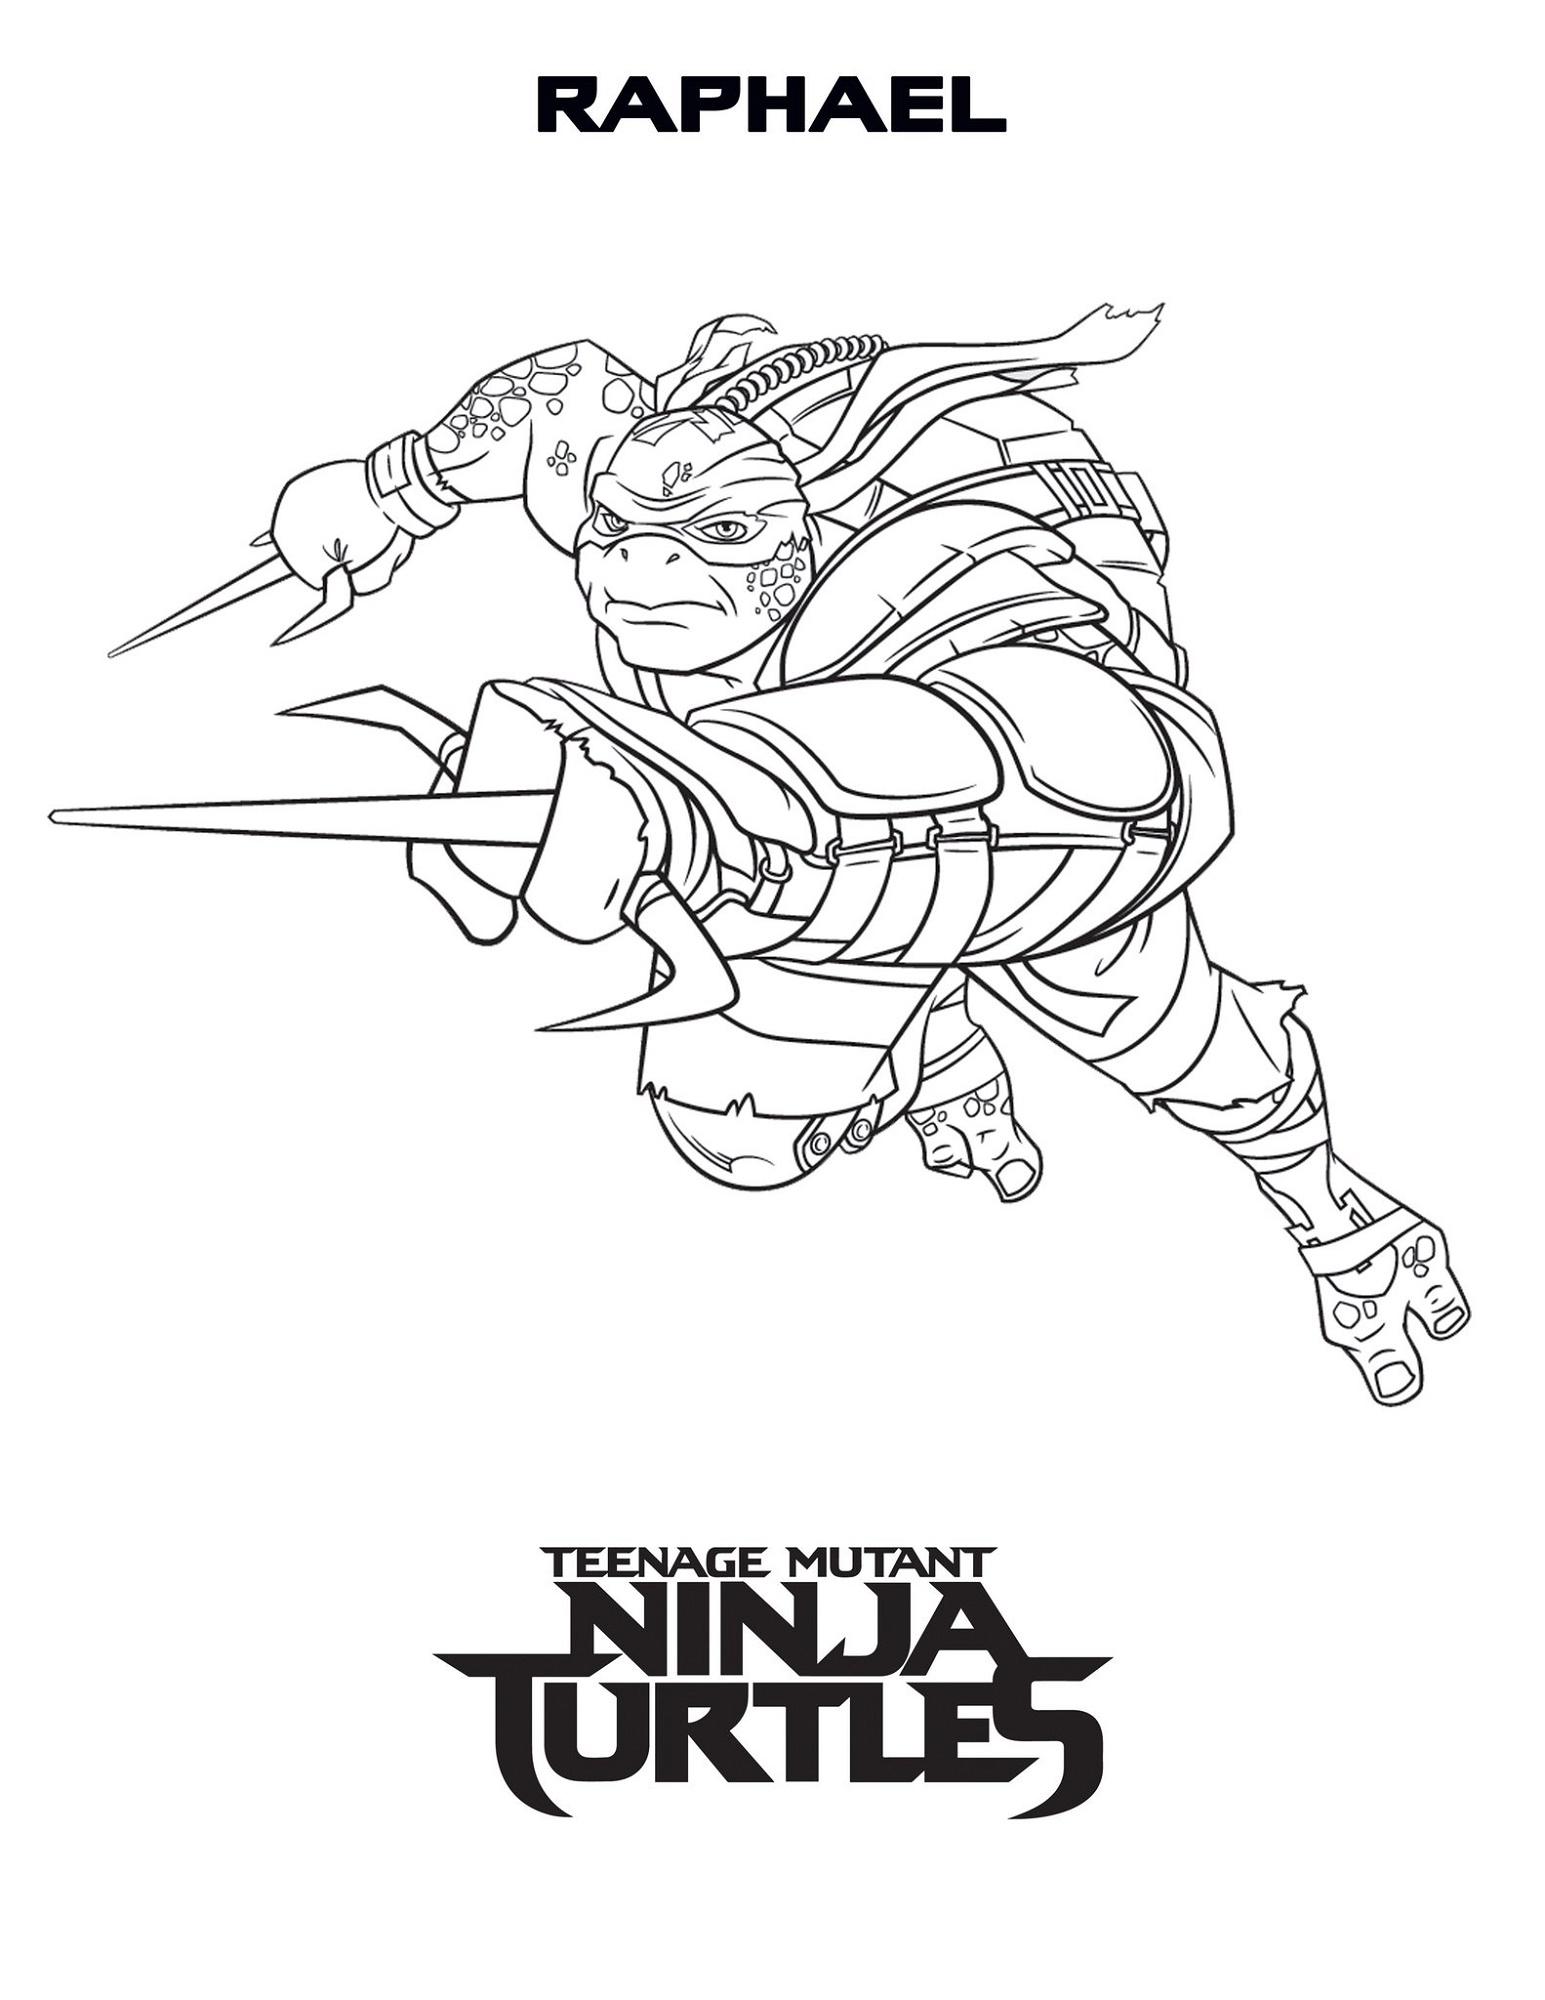 Teenage Mutant Ninja Turtles Coloring Pages To Print | K5 ...